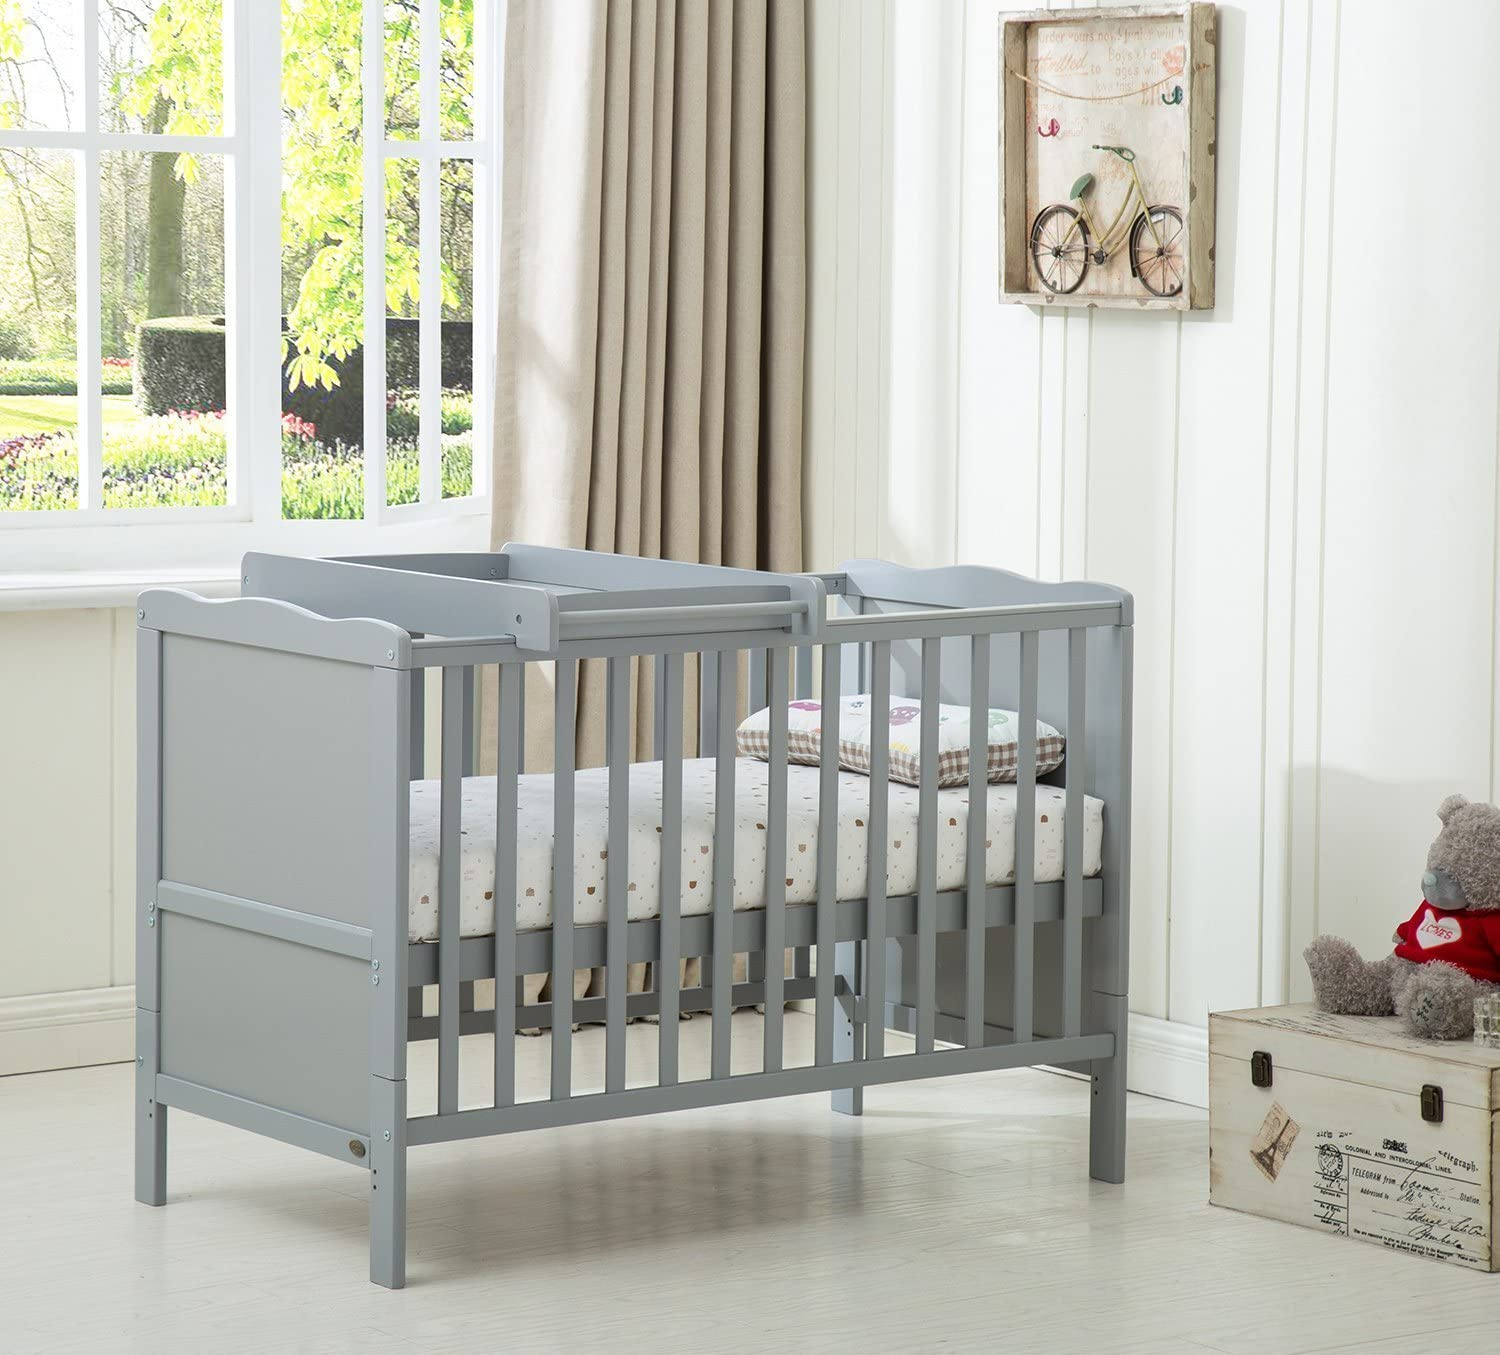 MCC Grey Wooden Baby Cot Bed /& Drawer /& Aloe Vera Water Repellent Mattress Orlando /…